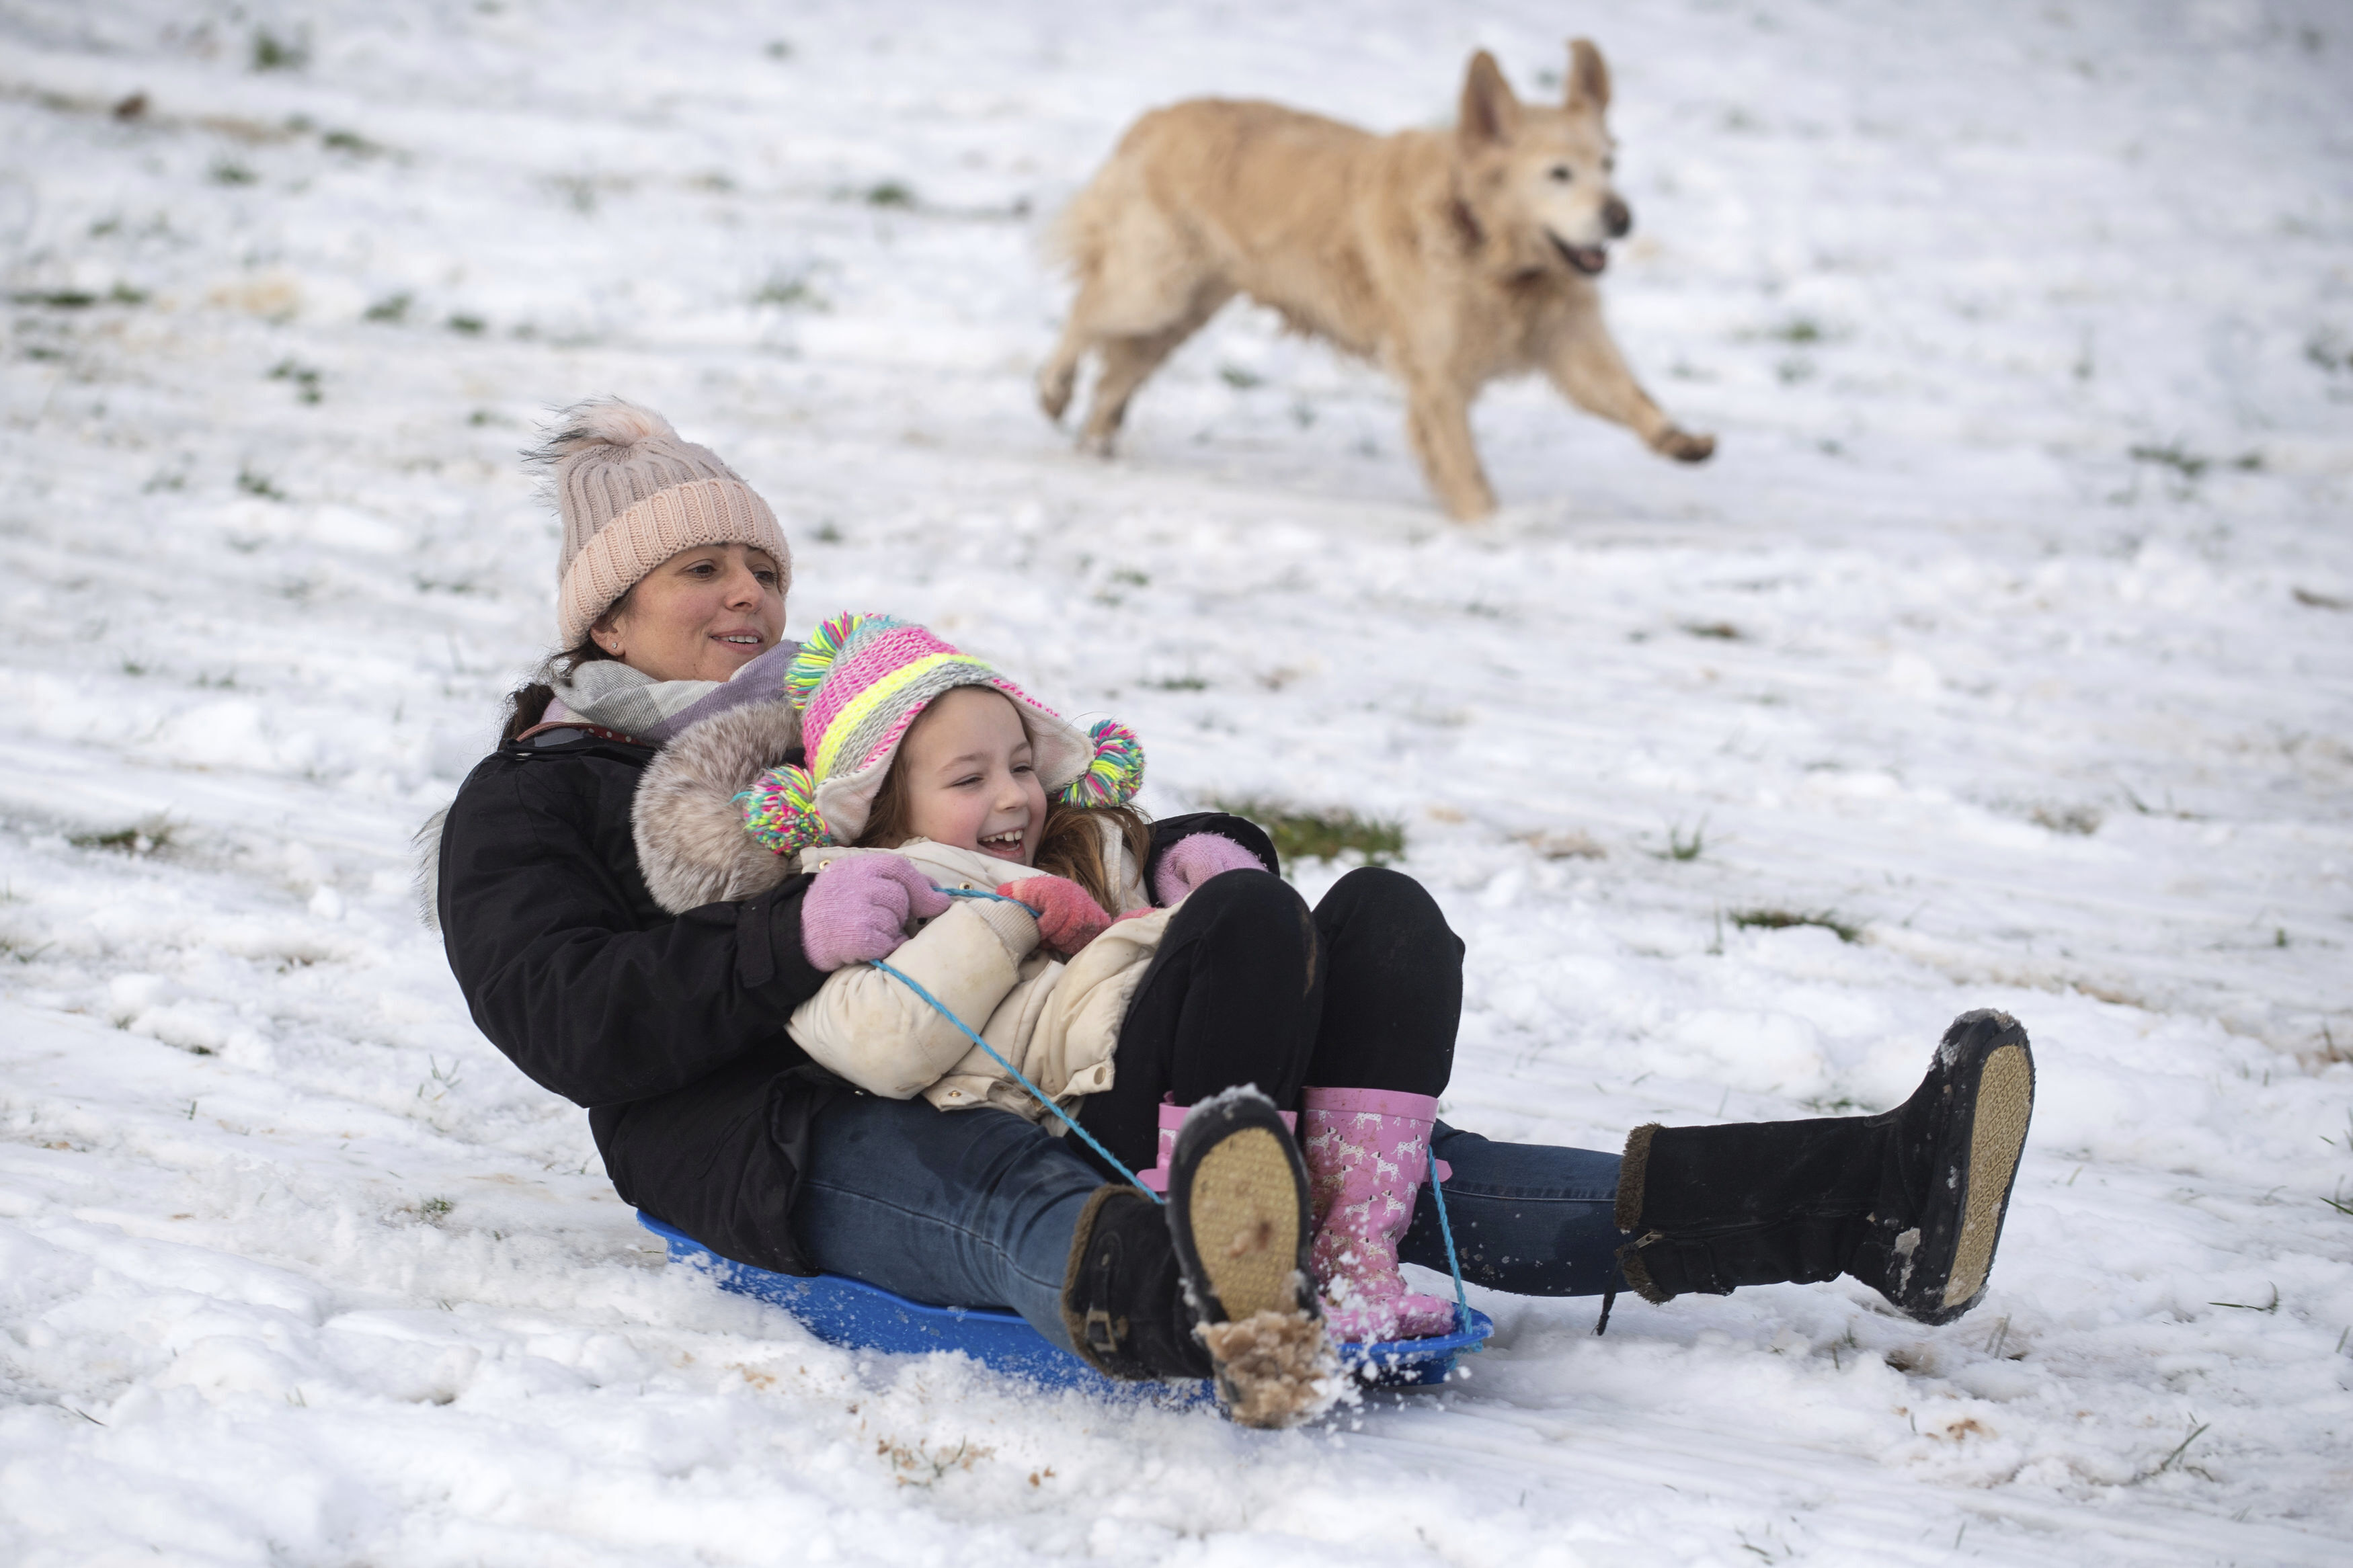 Lizzy and daughter Connie, 6, are chased down a snow covered hill by their golden retriever Pippa in a park in Newcastle-under-Lyme, England, Monday, Dec. 28, 2020. In the aftermath of Storm Bella swathes of the UK are braced for a cold snap, with snow and ice warnings in force across the country. (Joe Giddens/PA via AP)